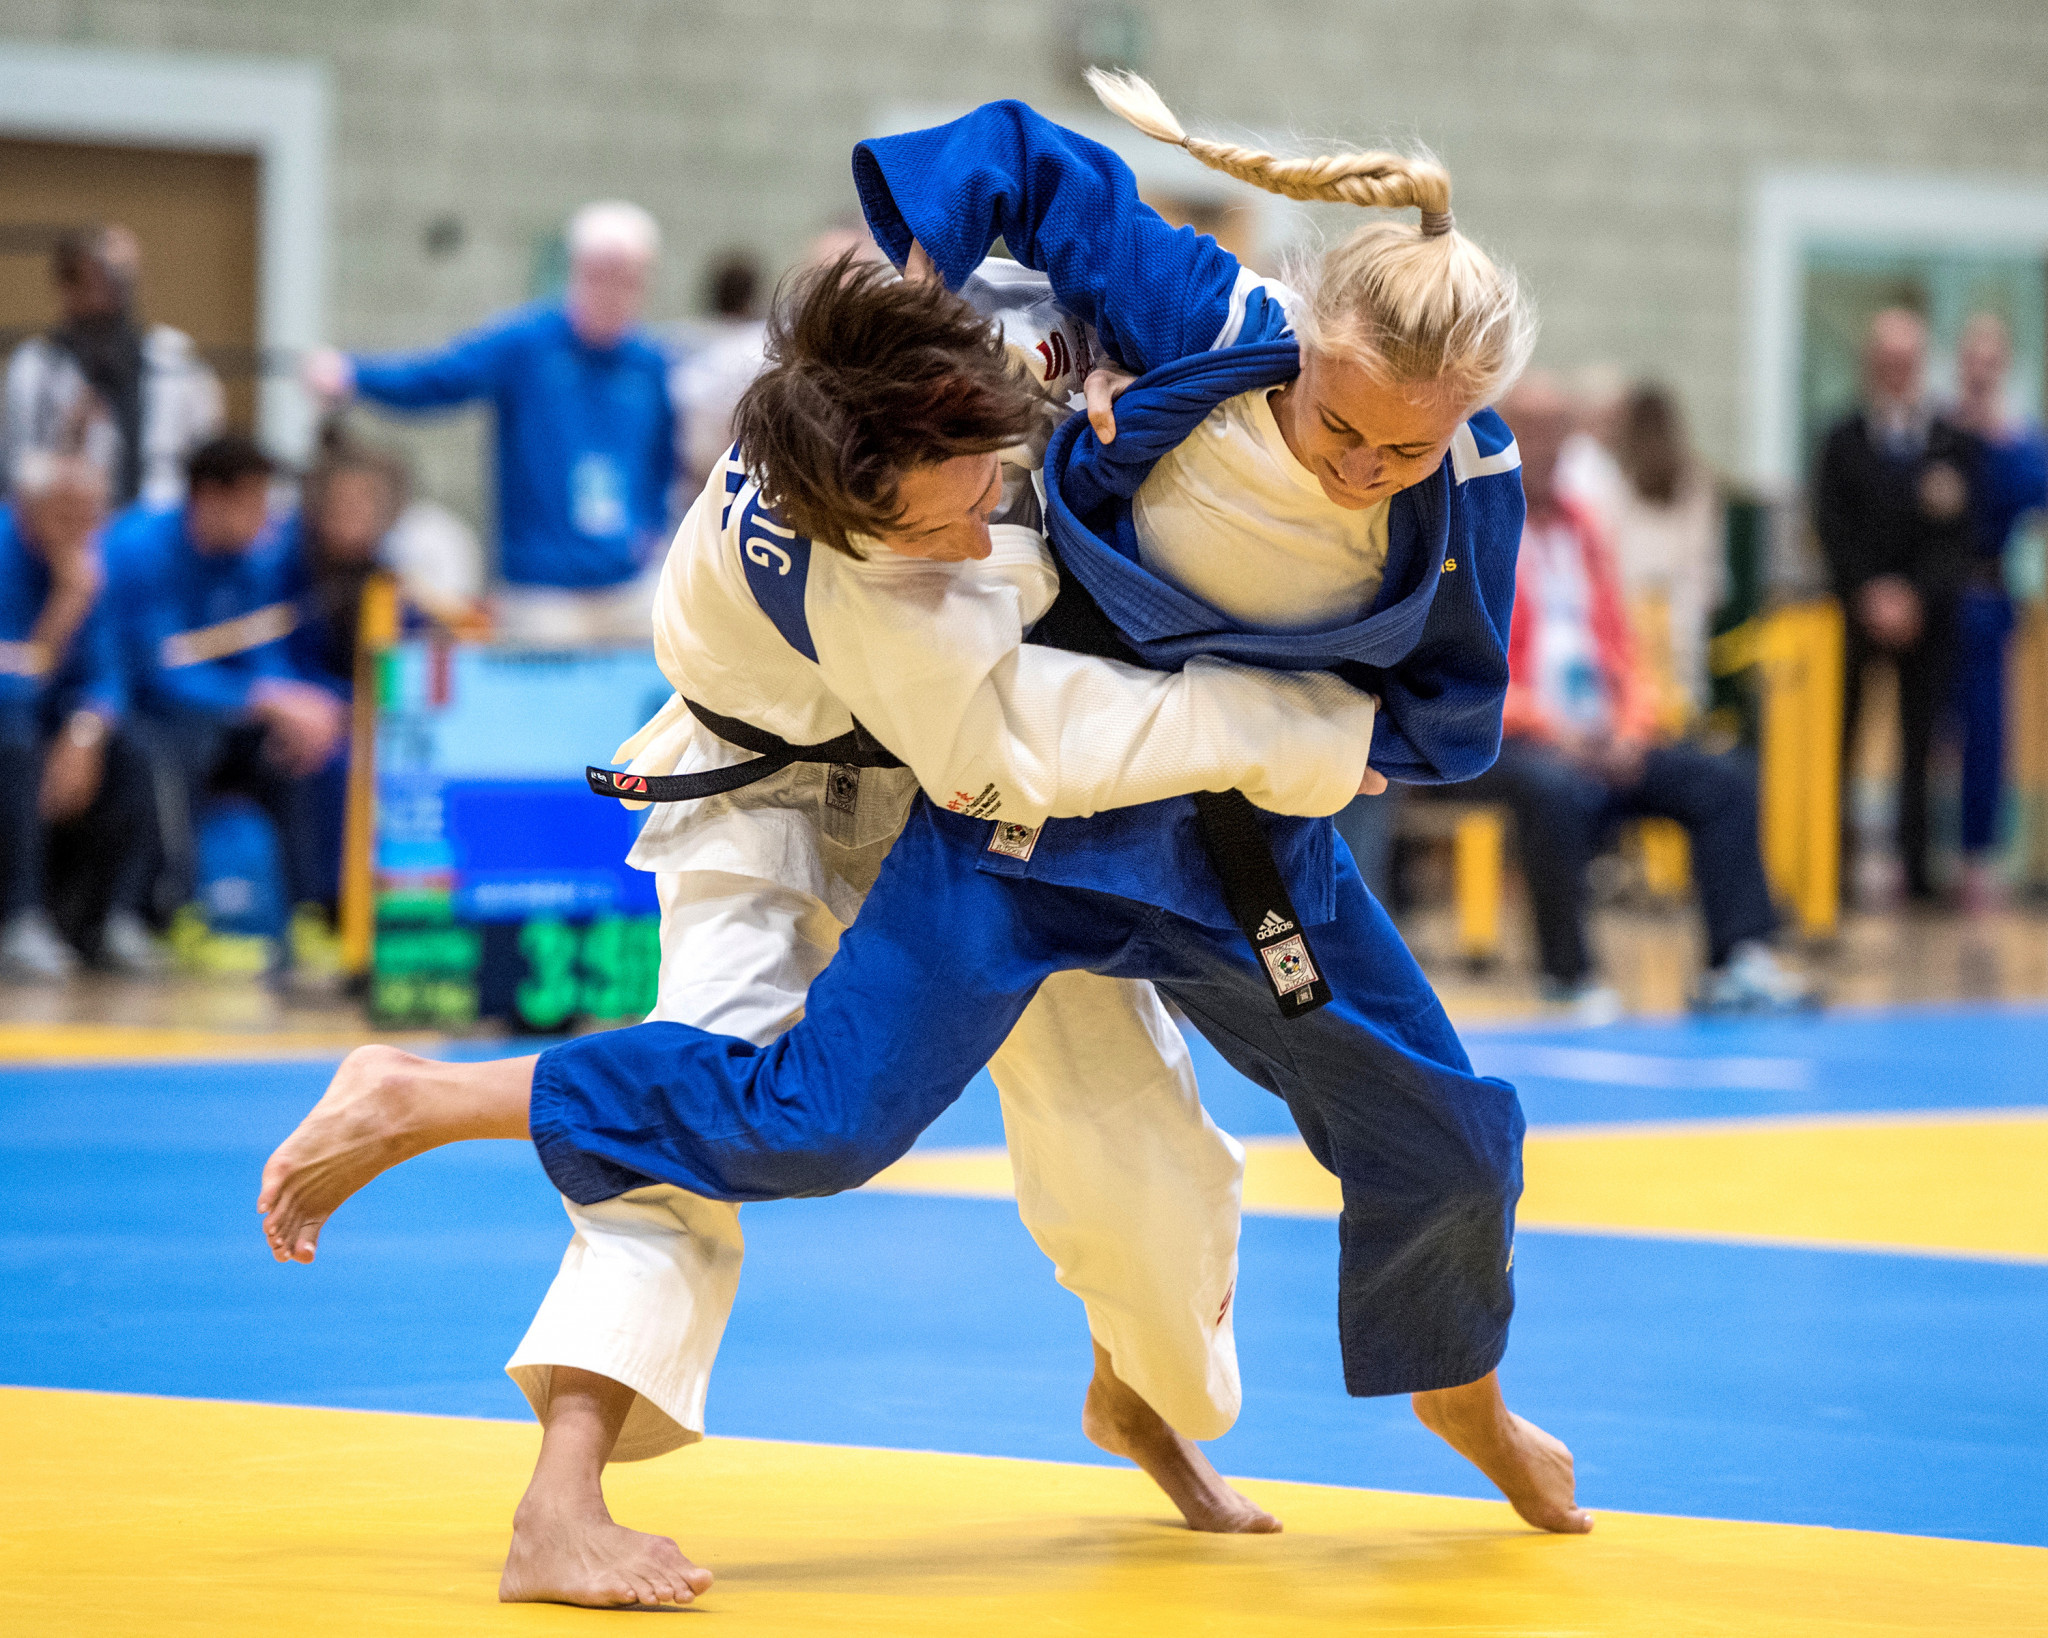 The objective of the IBSA Judo film is to demonstrate to elite coaches what it takes to coach visually impaired athletes to the highest level ©Getty Images